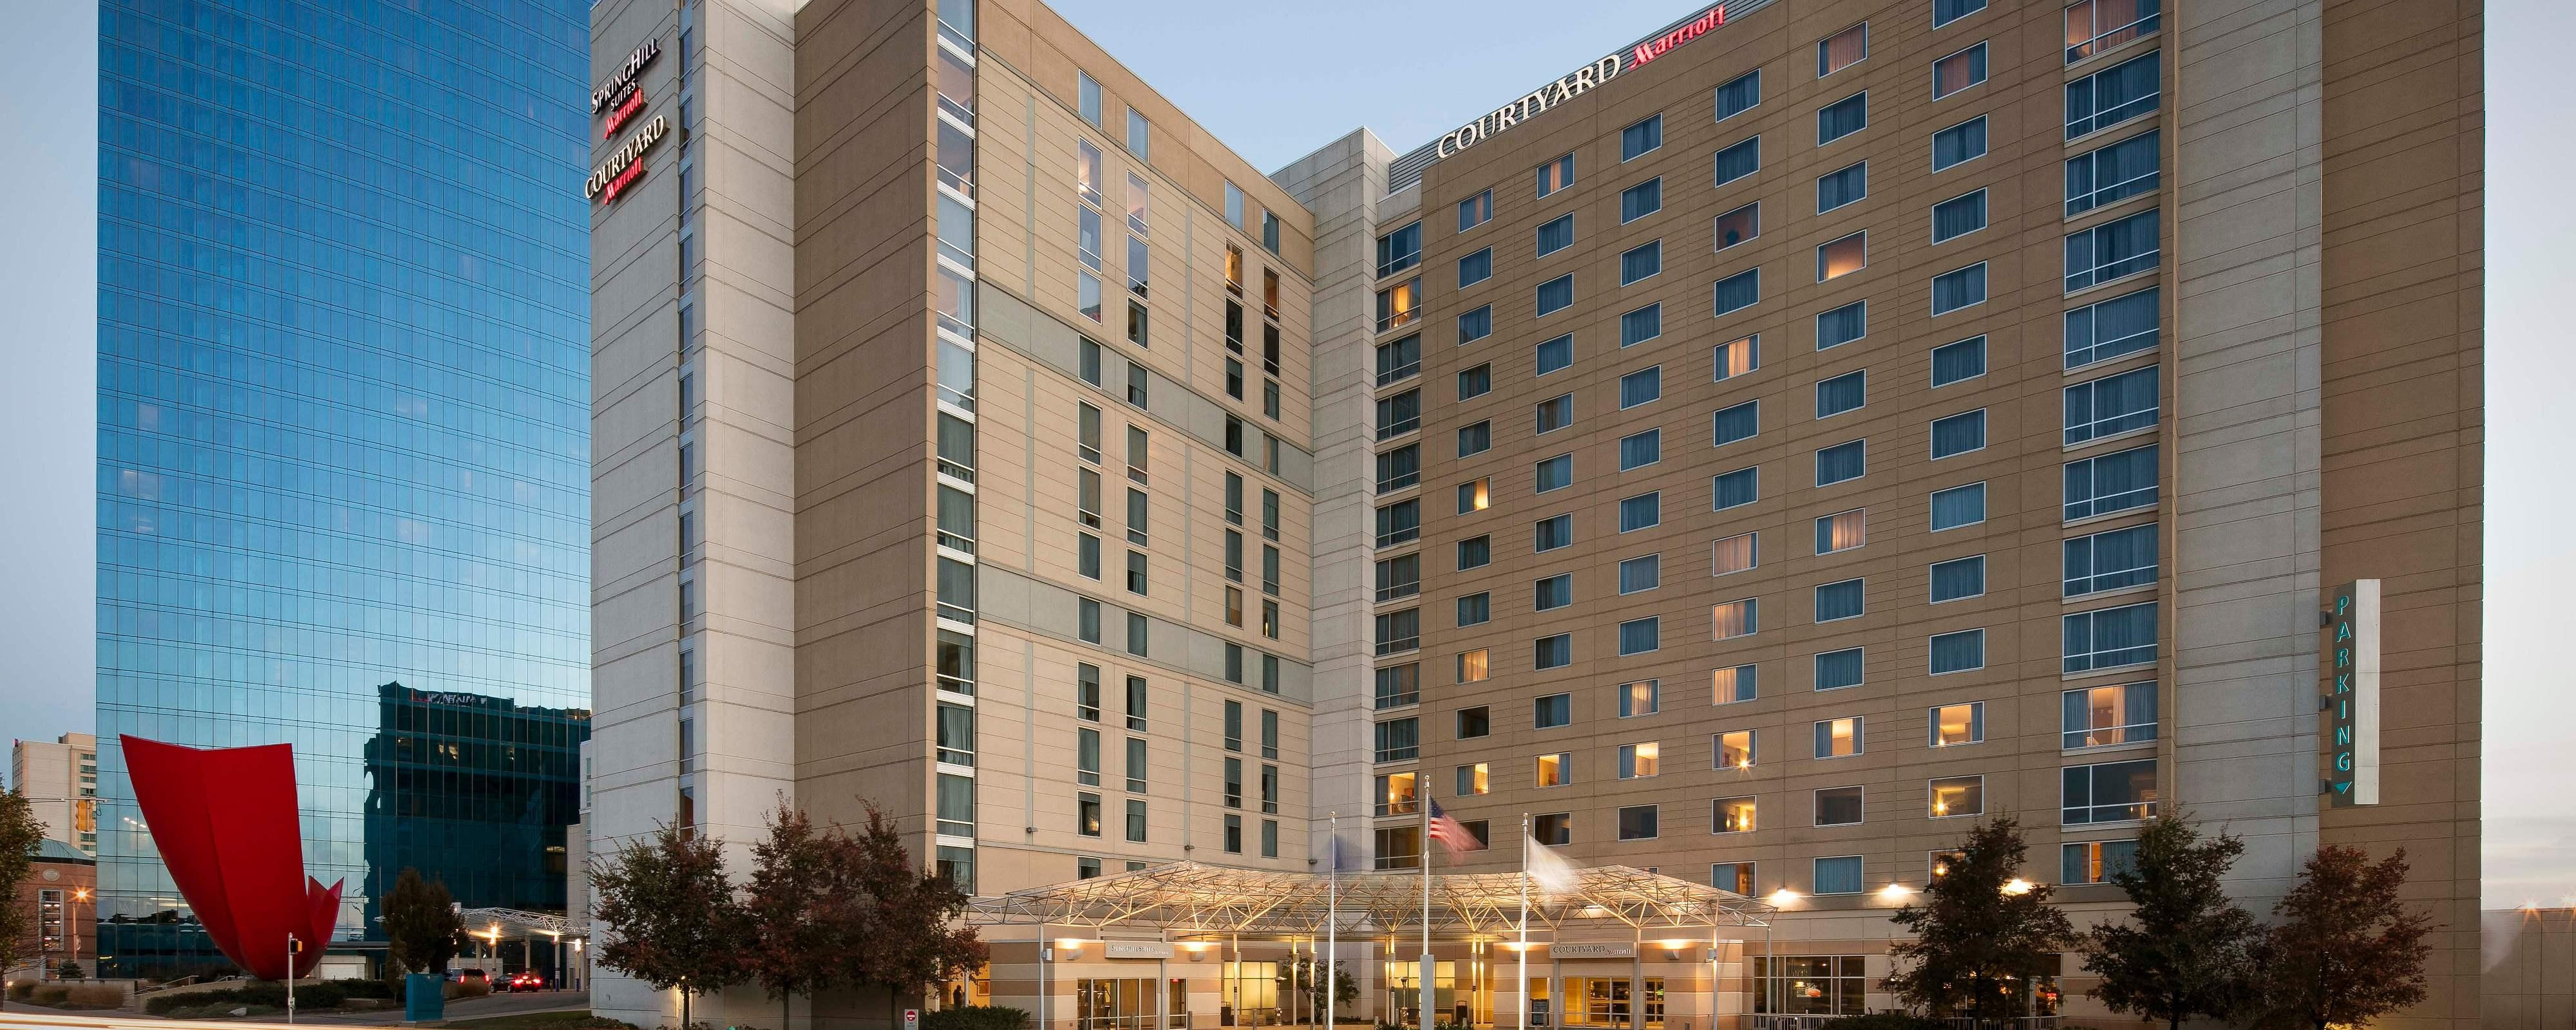 Exterior: Hotel Rooms Downtown Indianapolis